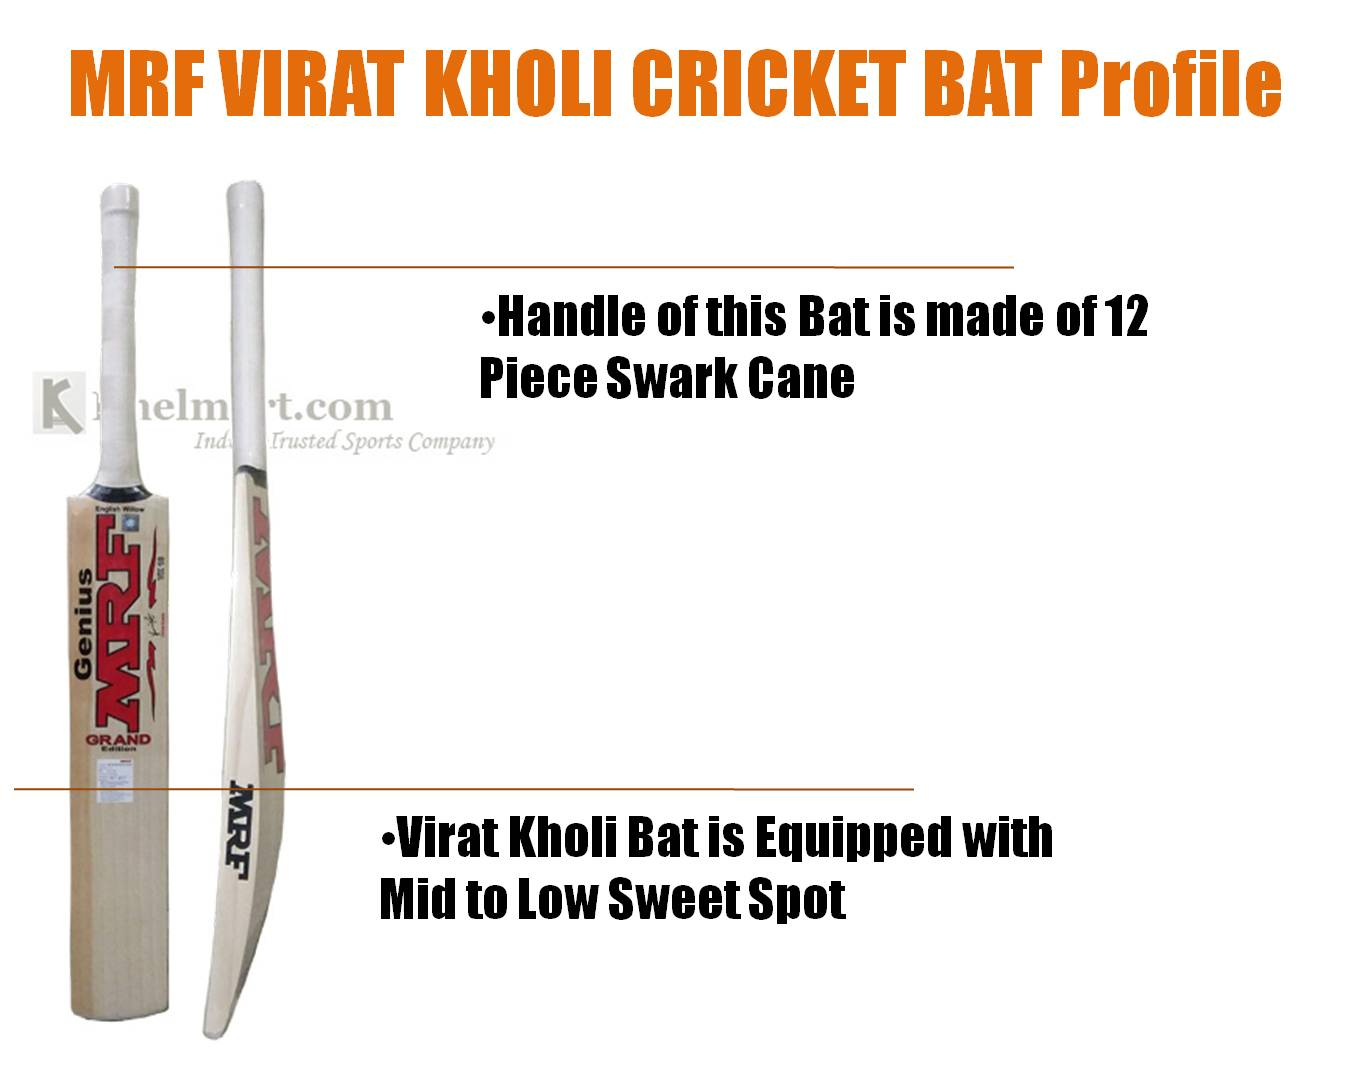 MRF_VIRAT_KHOLI_CRICKET_BAT_PROFILE